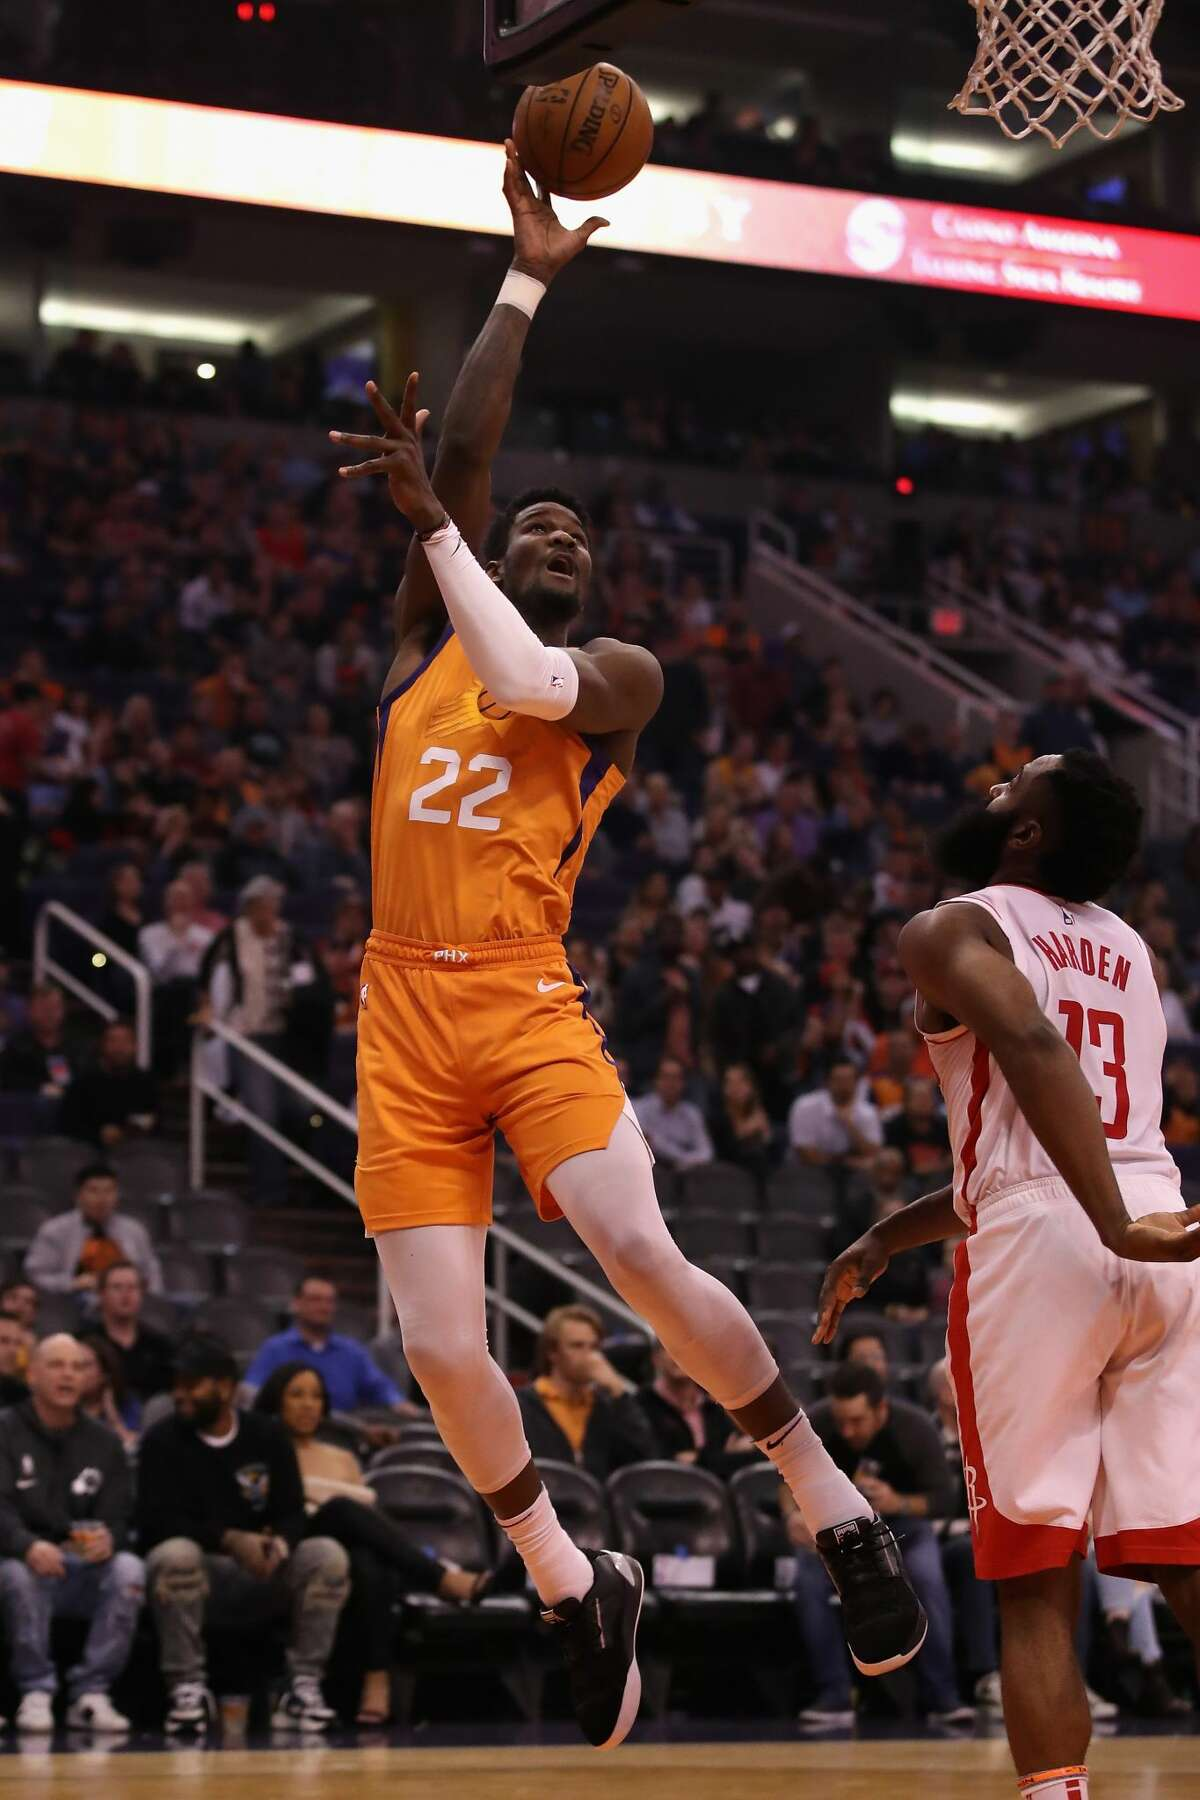 PHOENIX, ARIZONA - FEBRUARY 07: Deandre Ayton #22 of the Phoenix Suns attempts a shot over James Harden #13 of the Houston Rockets during the second half of the NBA game at Talking Stick Resort Arena on February 07, 2020 in Phoenix, Arizona. NOTE TO USER: User expressly acknowledges and agrees that, by downloading and or using this photograph, user is consenting to the terms and conditions of the Getty Images License Agreement. Mandatory Copyright Notice: Copyright 2020 NBAE. (Photo by Christian Petersen/Getty Images)